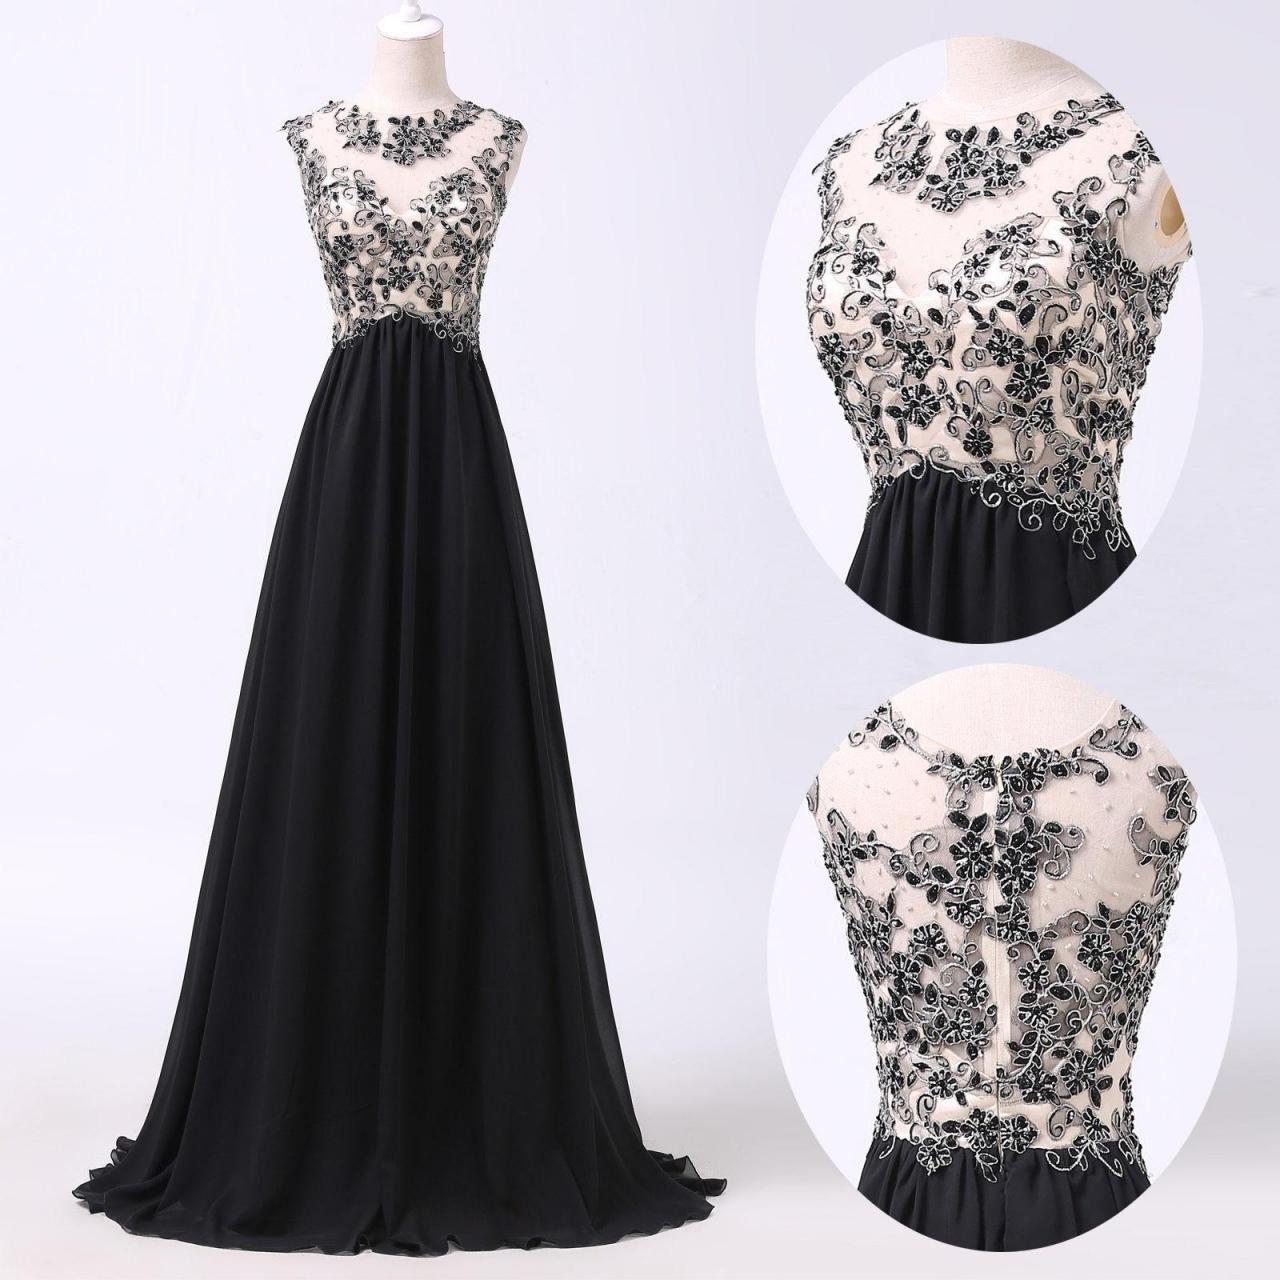 simple dresses a line prom dresses,black lace prom dress,simple prom dress,modest evening  gowns,cheap party hpivmye